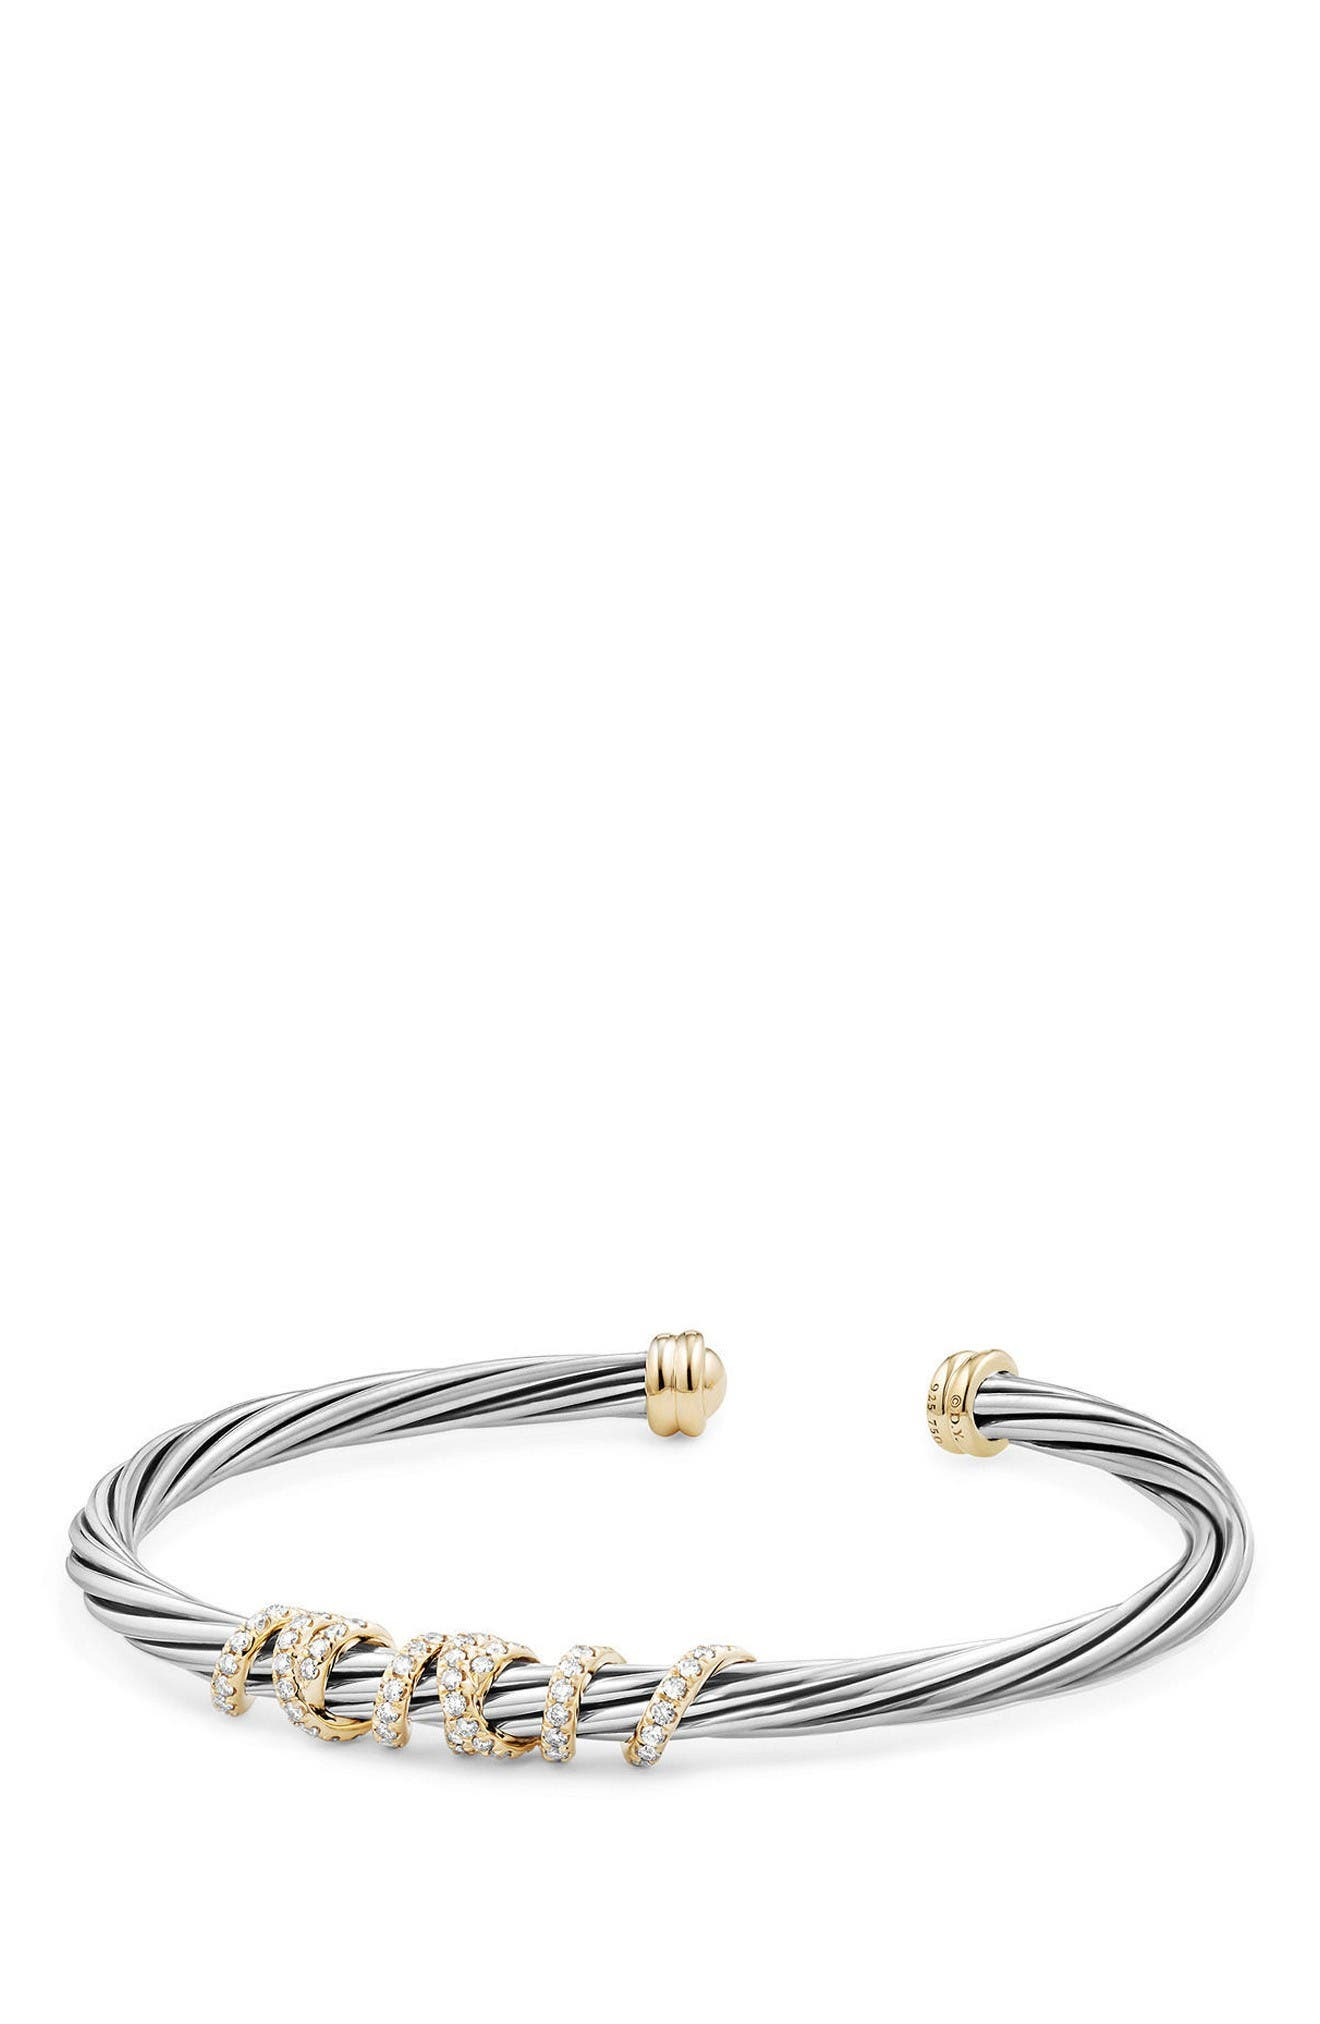 Helena Center Station Bracelet with Diamonds and 18K Gold, 4mm,                         Main,                         color, Silver/ Gold